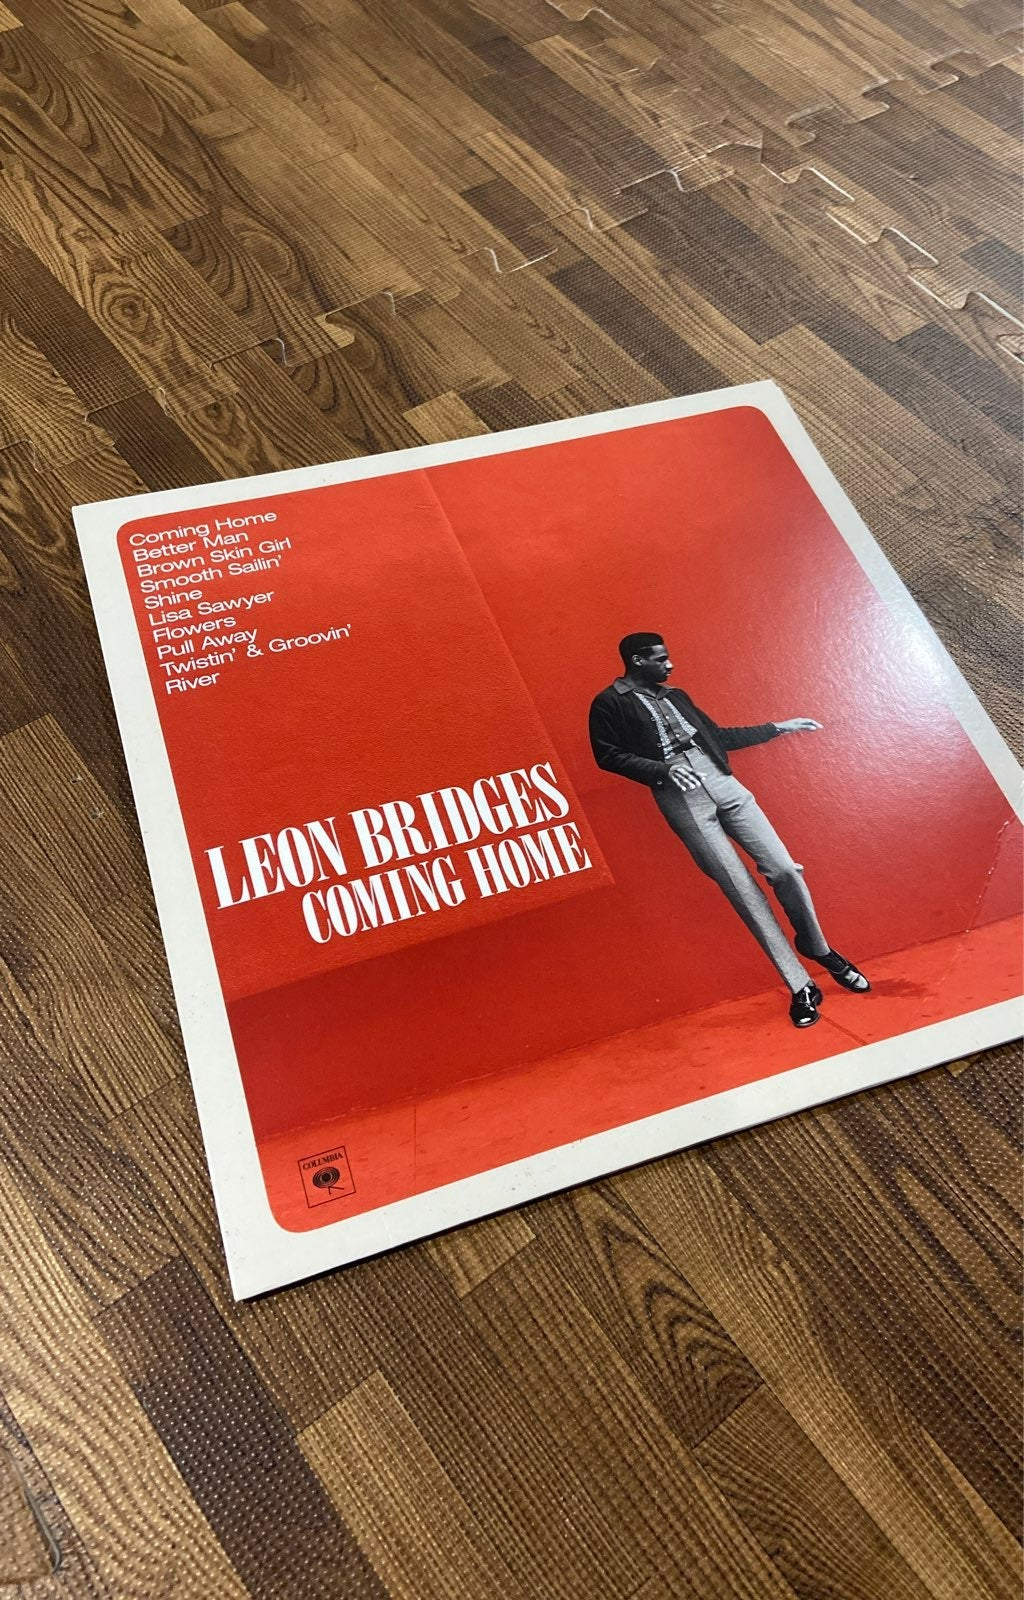 Leon Brodges Coming Home Vinyl